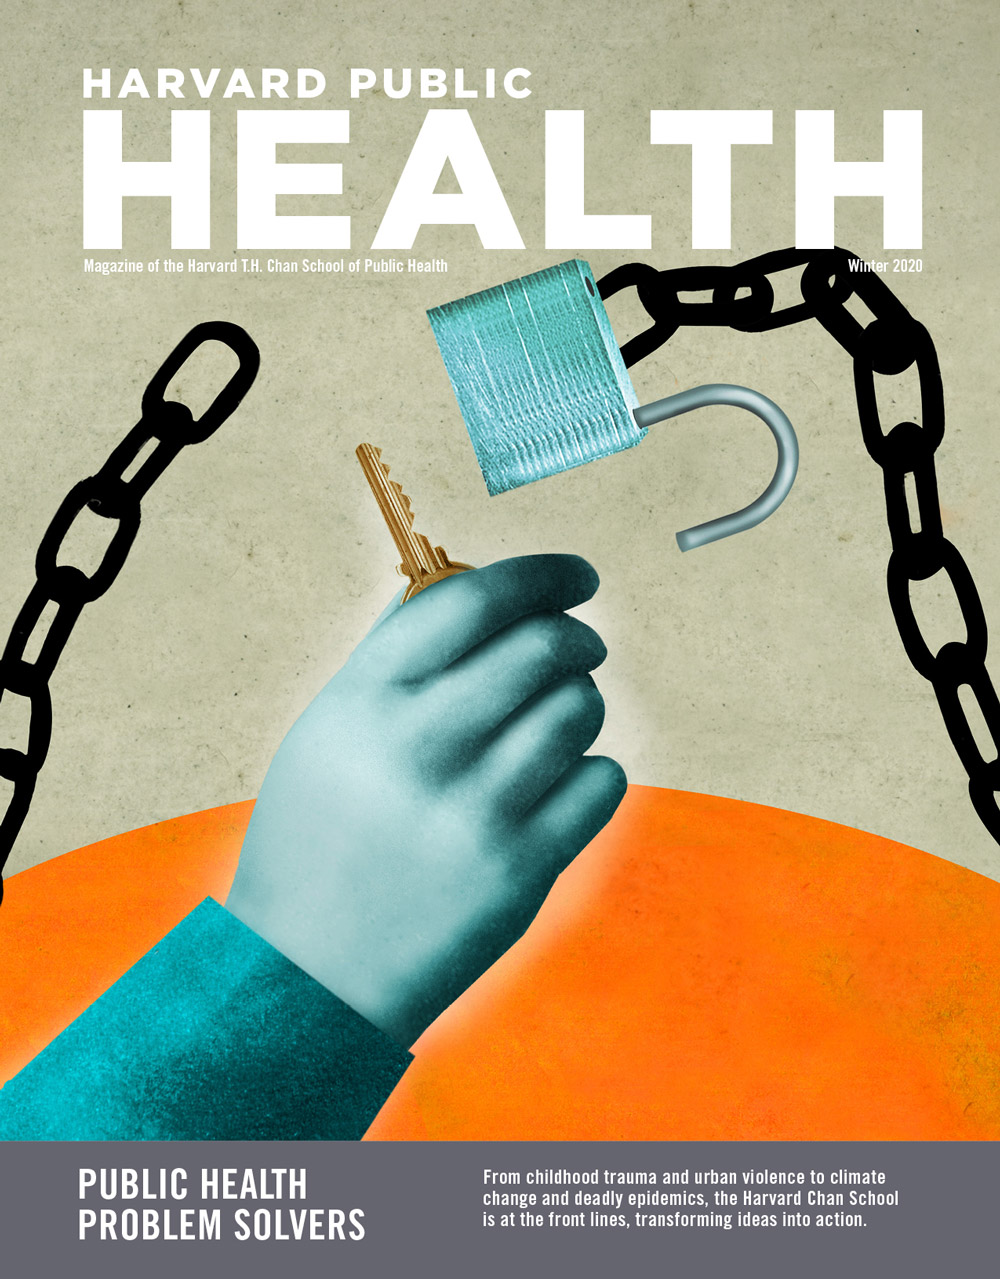 Cover image of Harvard Public Health Winter 2020 Issue